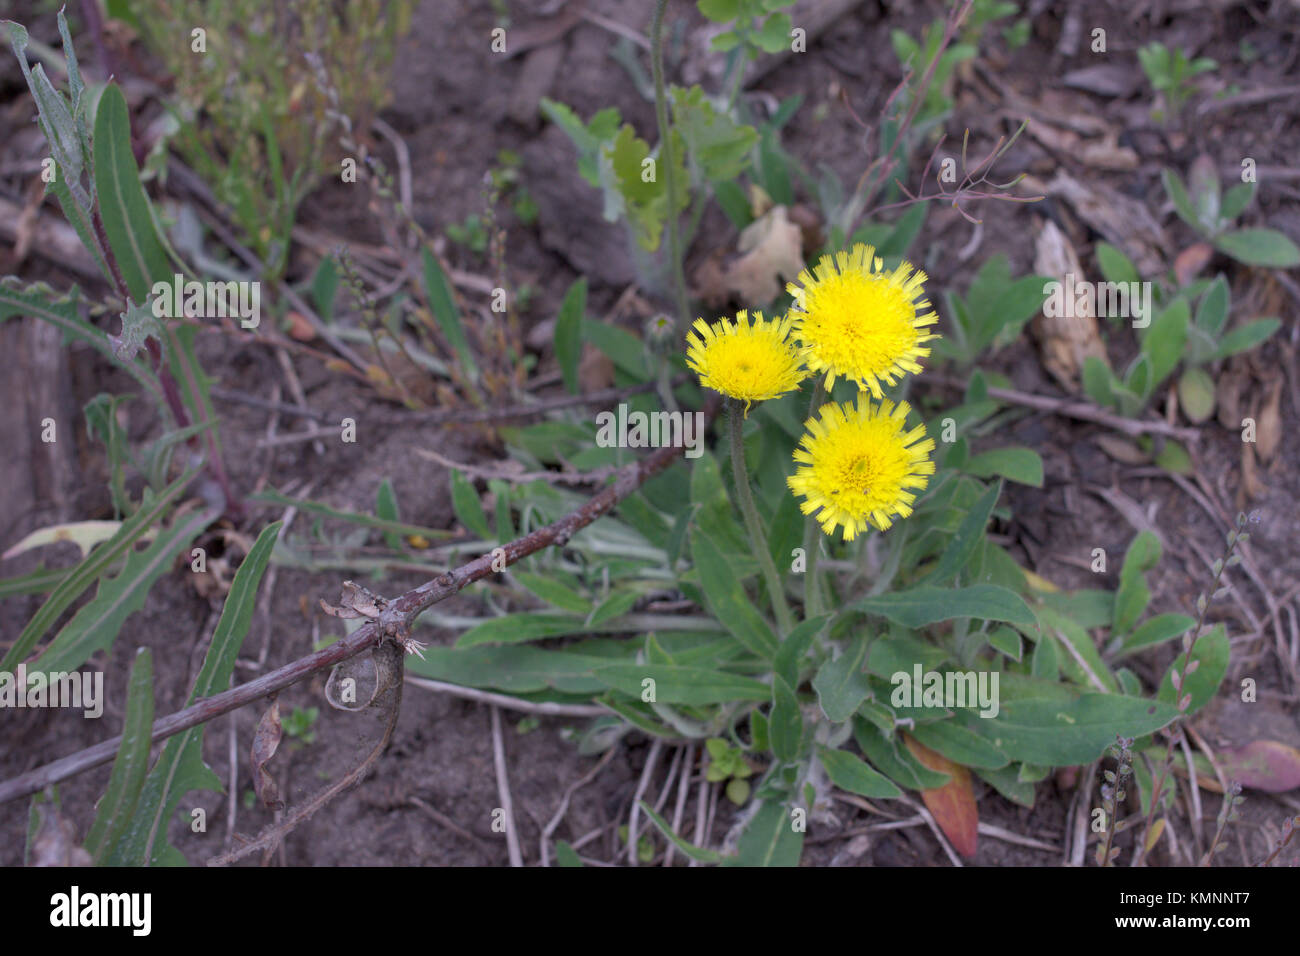 Hieracium pilosella, or mouse-ear hawkweed. Yellow forest flower with long stem and hairy leaves, grows  at the - Stock Image